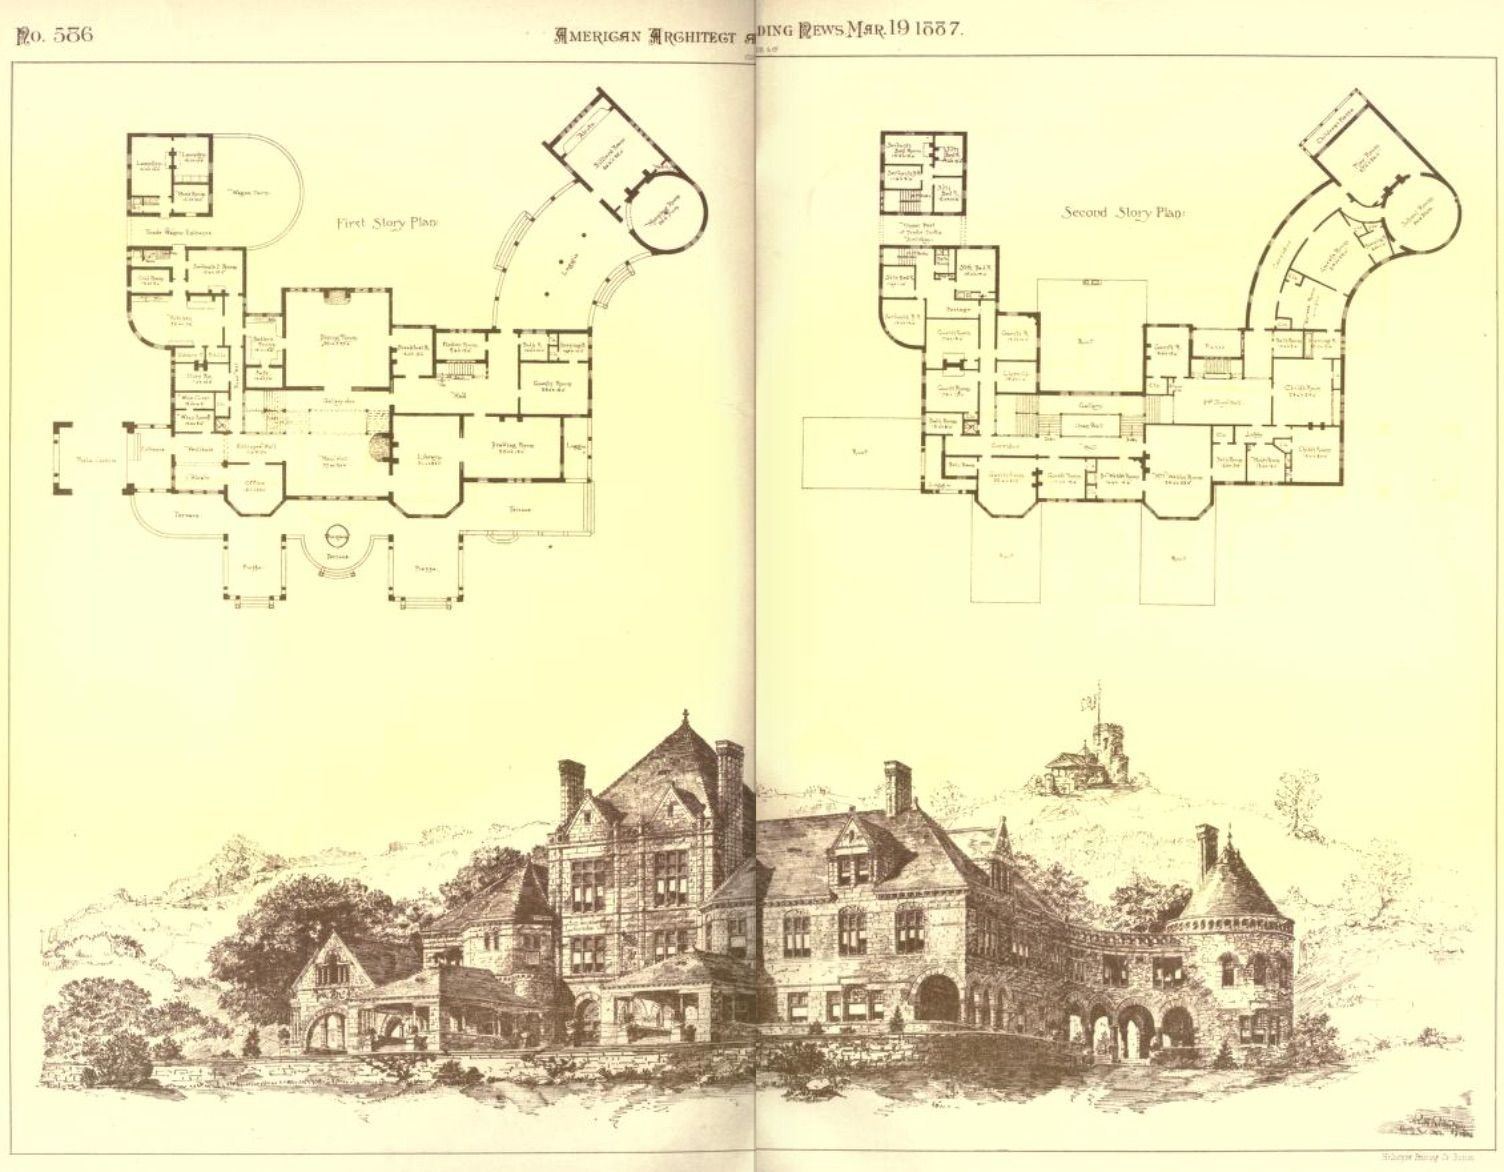 Monster mansion unknown location shame about the quality would love to know what career architecturefloor plans architectureinterest